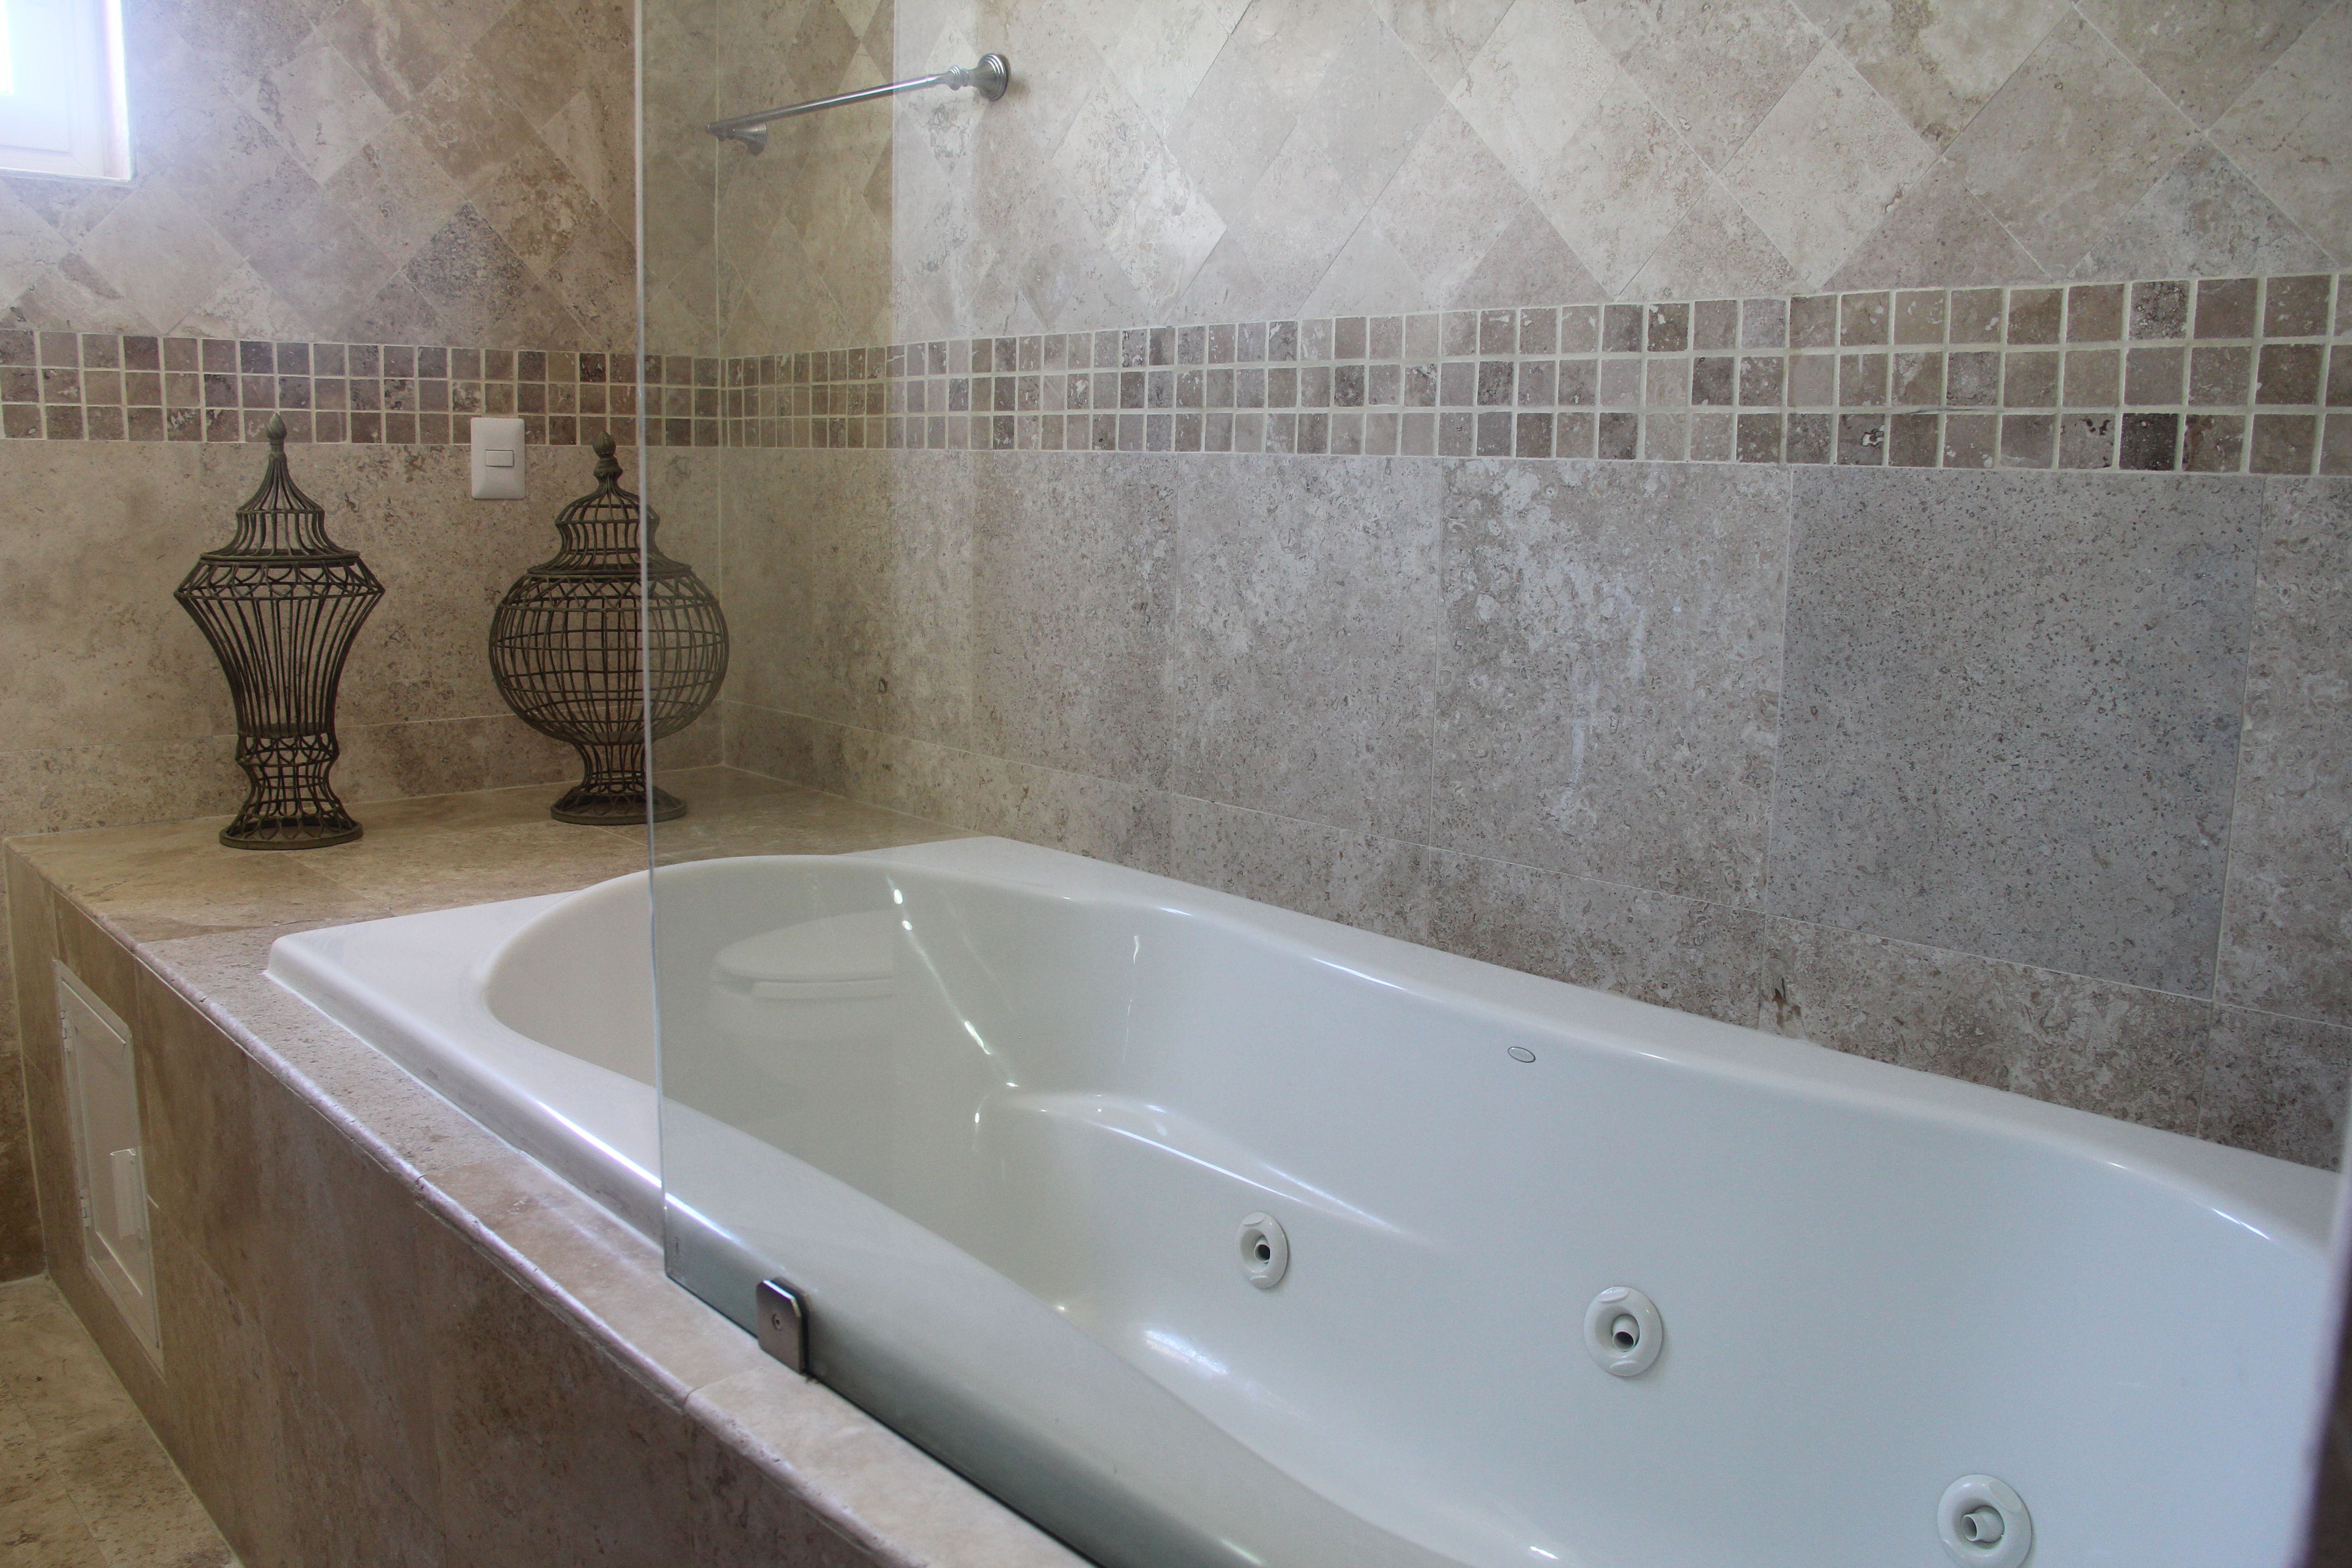 Jacuzzi in master en-suite.